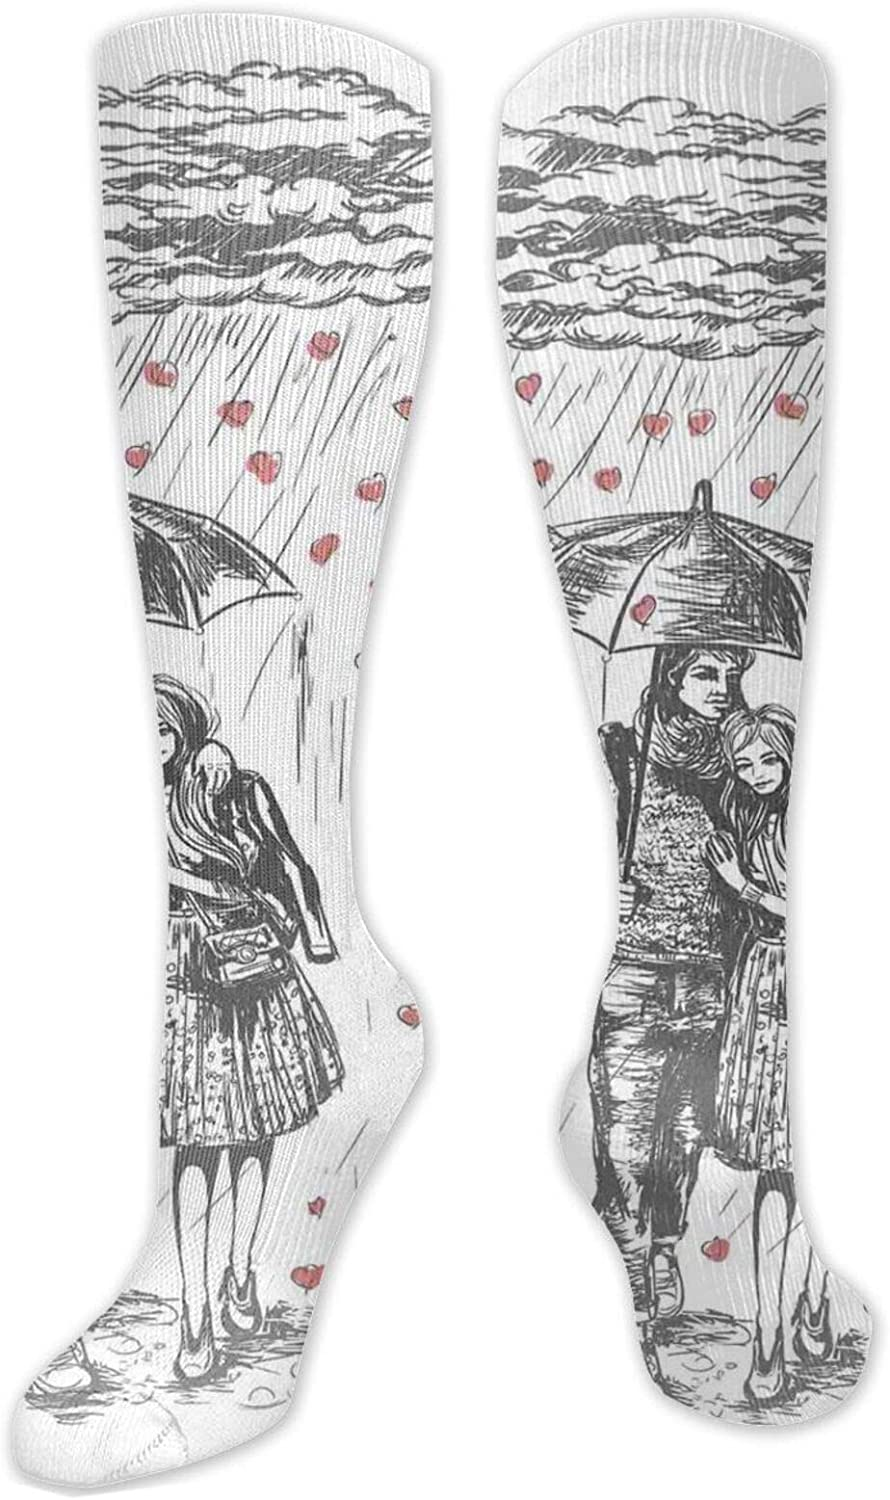 Compression High Socks-Floral Pattern Wildflowers Leaves And Butterflies Nature Inspired Illustration Best for Running,Athletic,Hiking,Travel,Flight